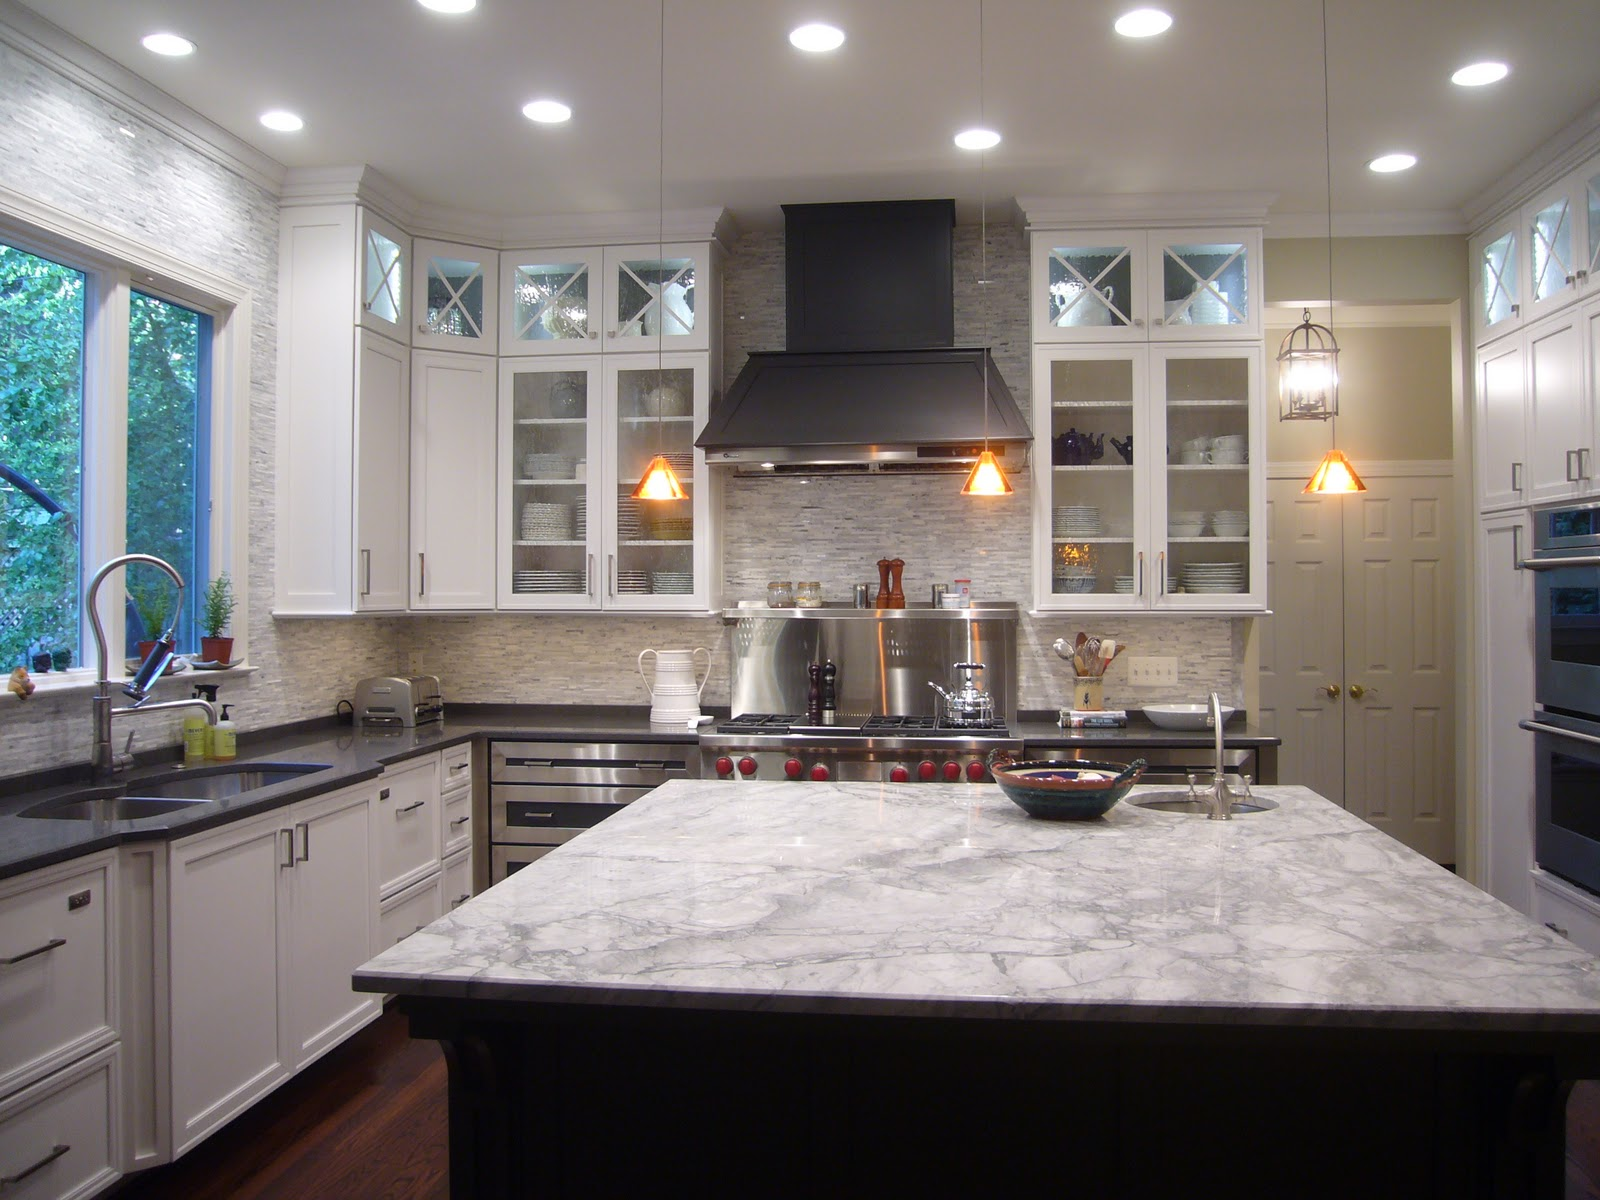 White Kitchen with Gray Granite Countertops